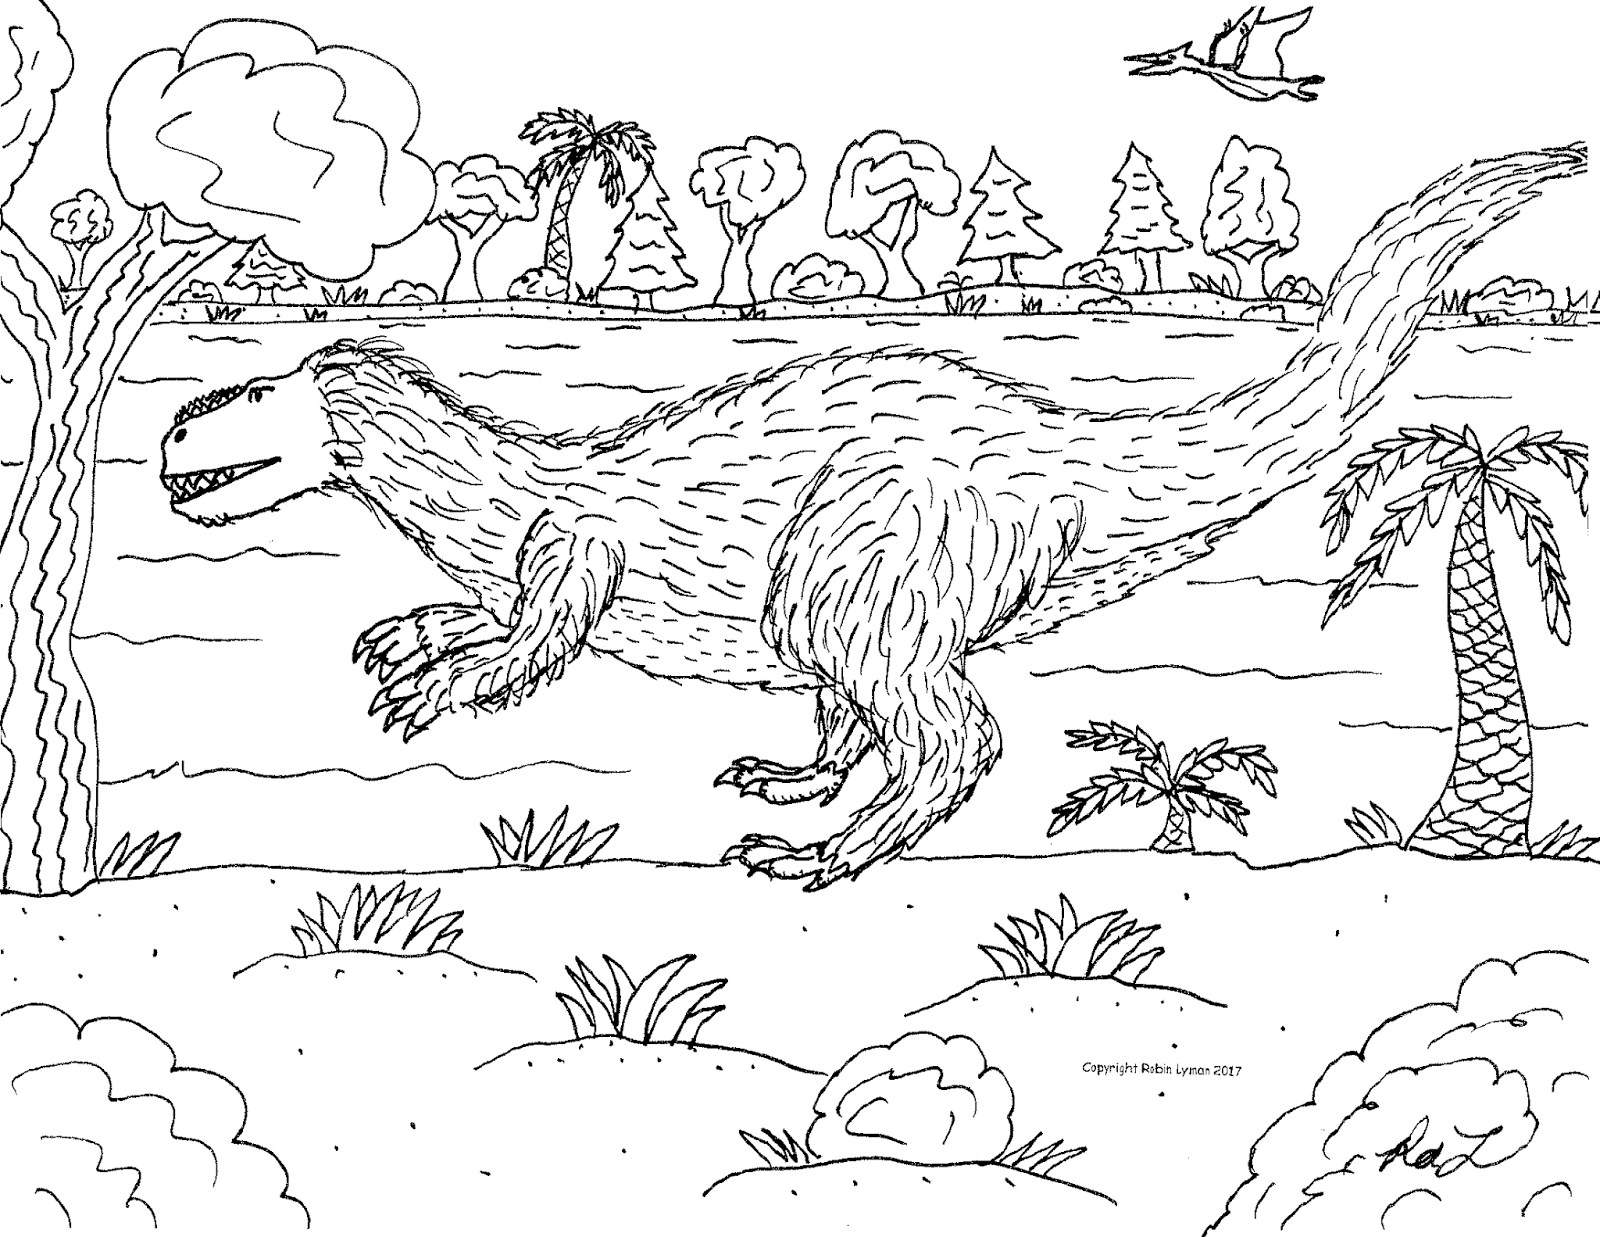 Robin S Great Coloring Pages New Torvosaurus